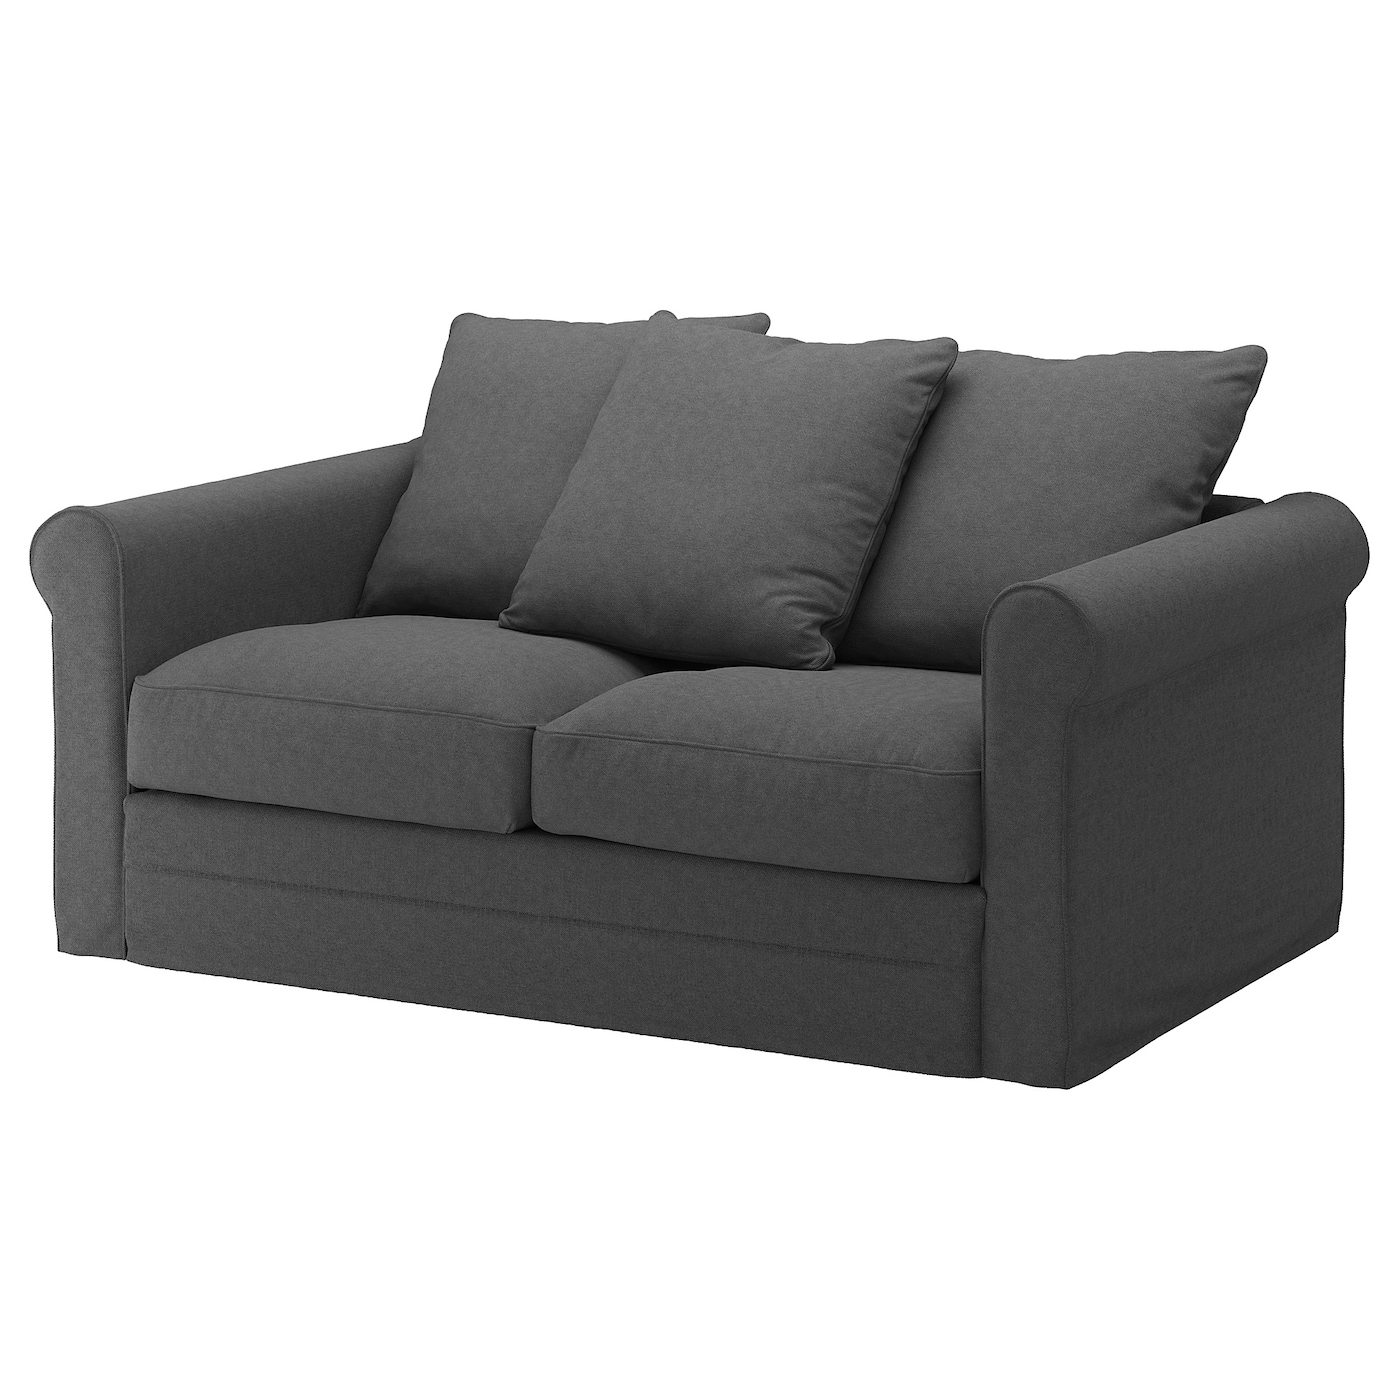 Corner Sofas Gumtree Liverpool: Grey Sofas Timber Pebble Gray Sofa Sofas Article Modern